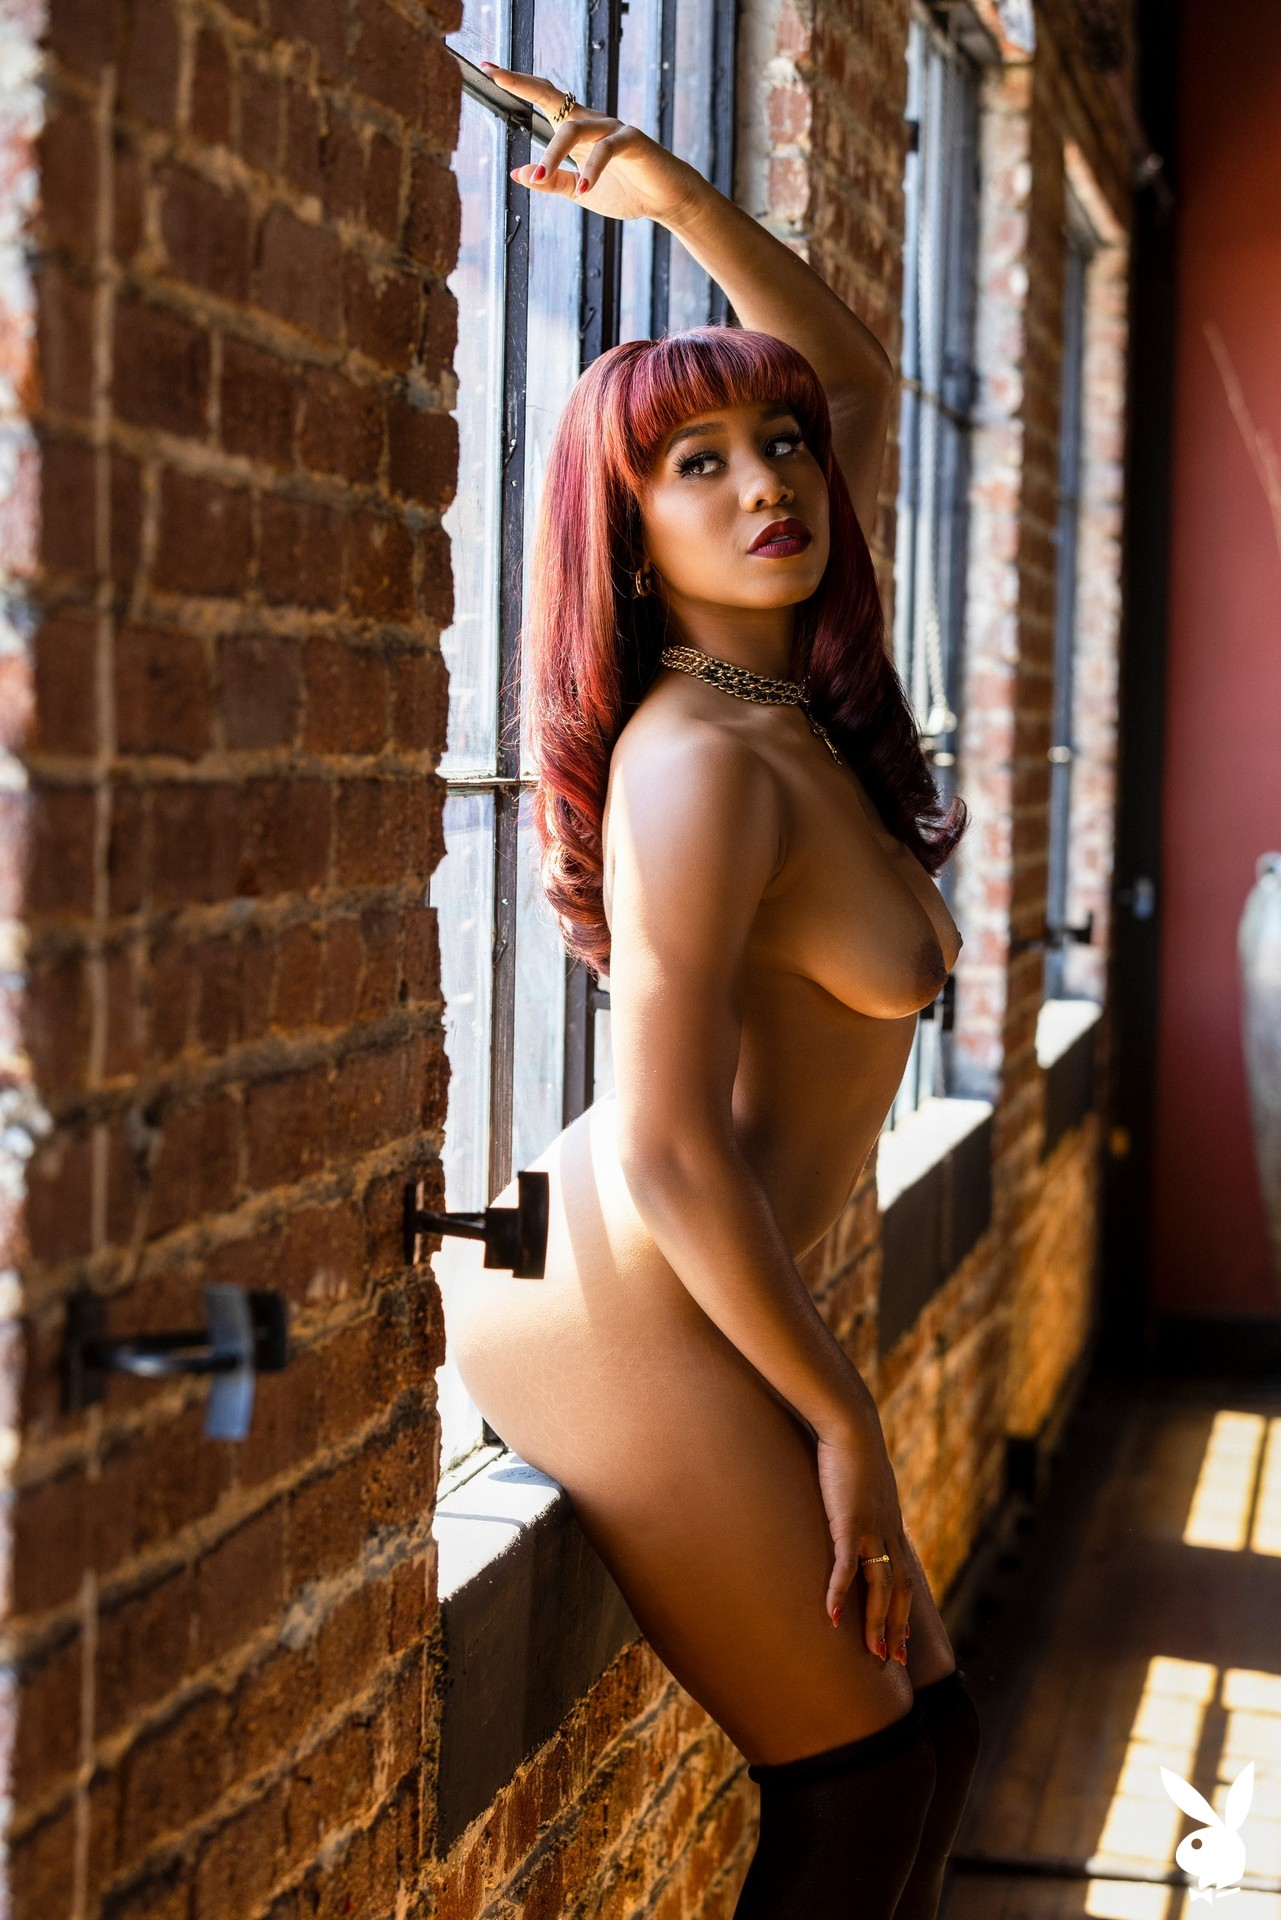 Jenna Foxx In Filled With Desire Playboy Plus (24)